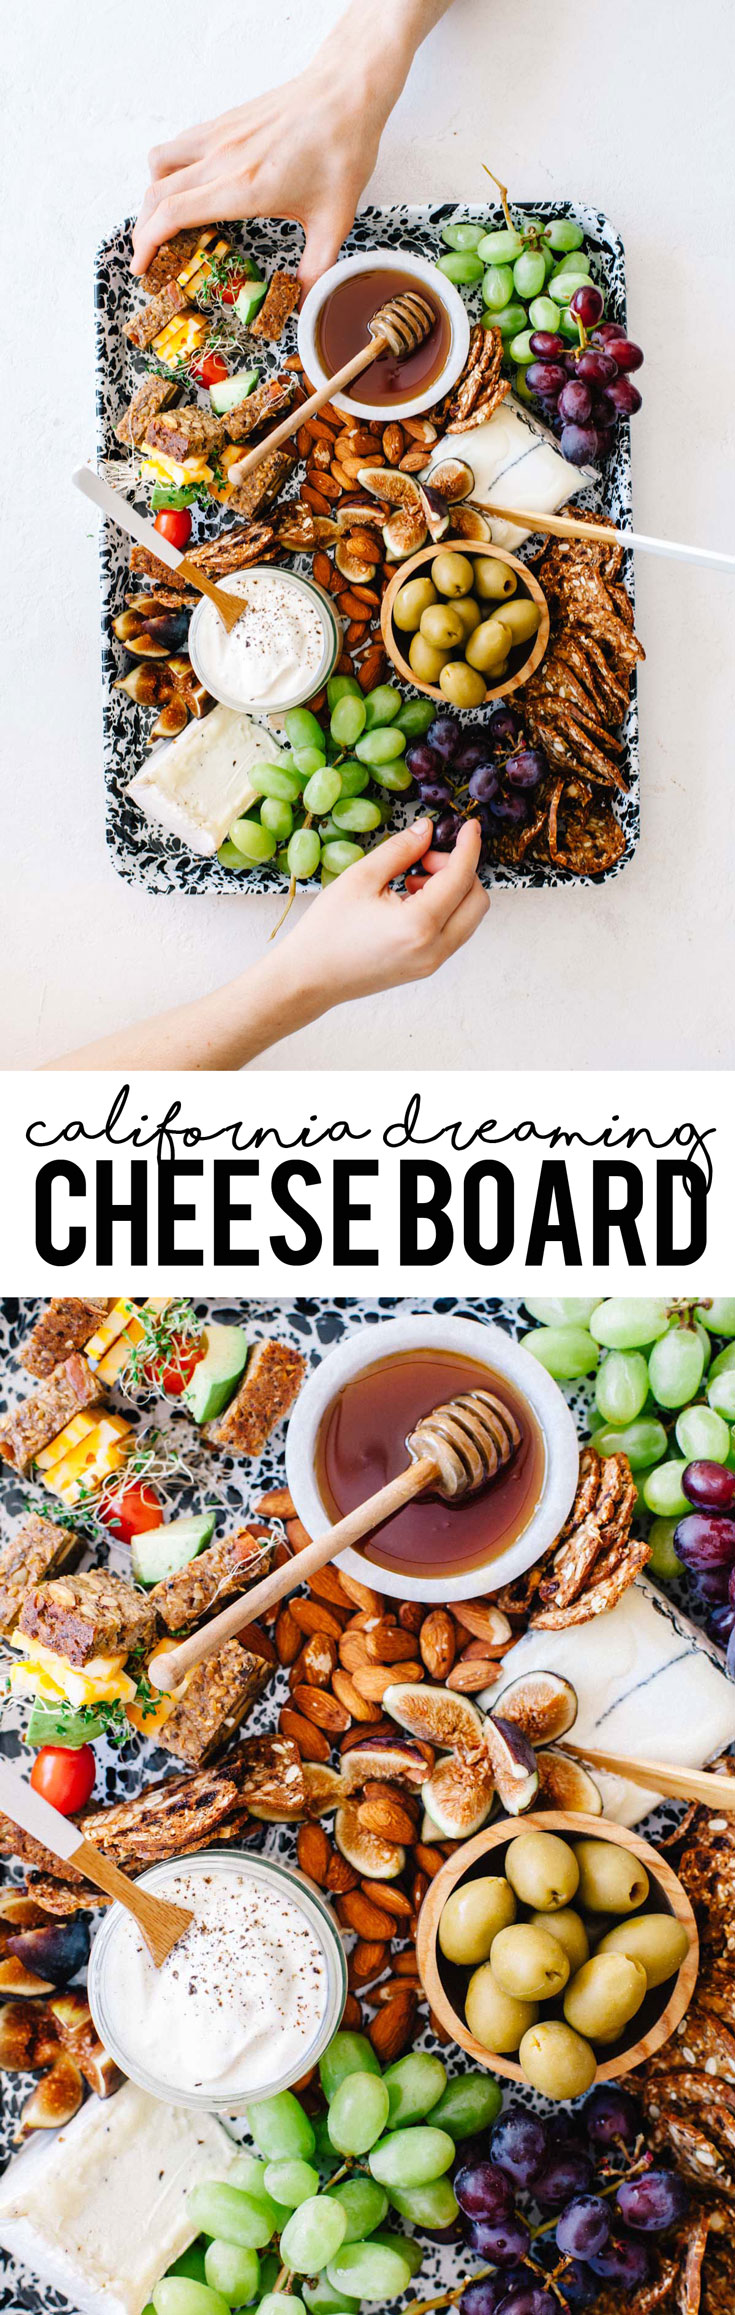 This California Dreaming Cheese Board from the Platters and Boards Cookbook with tons of fresh Cali-based goods is perfect for your next beach day or party! #cheese #party #cheeseplate #vegetarian | Brewing Happiness